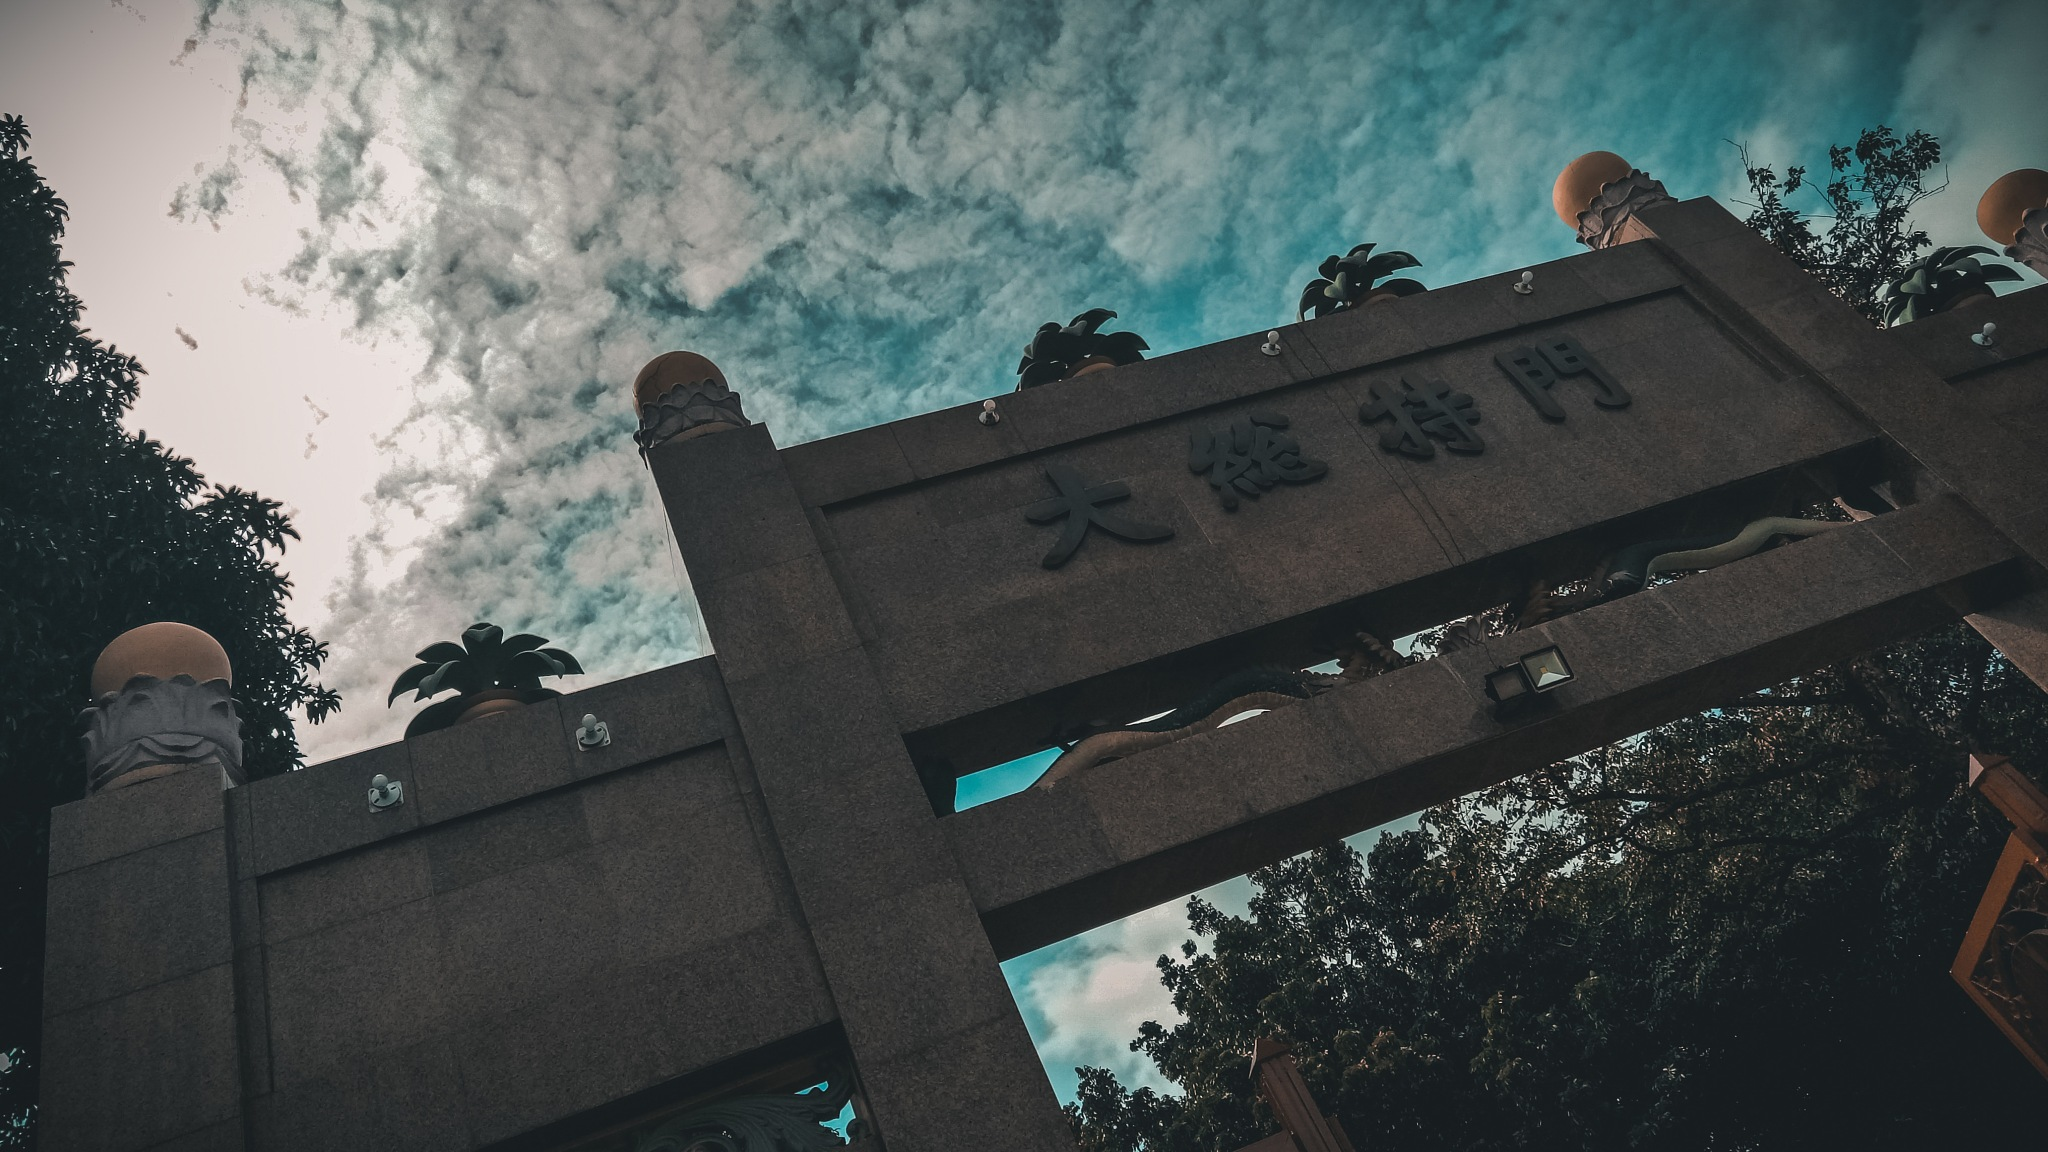 Chinese Garden by Kc Lopez